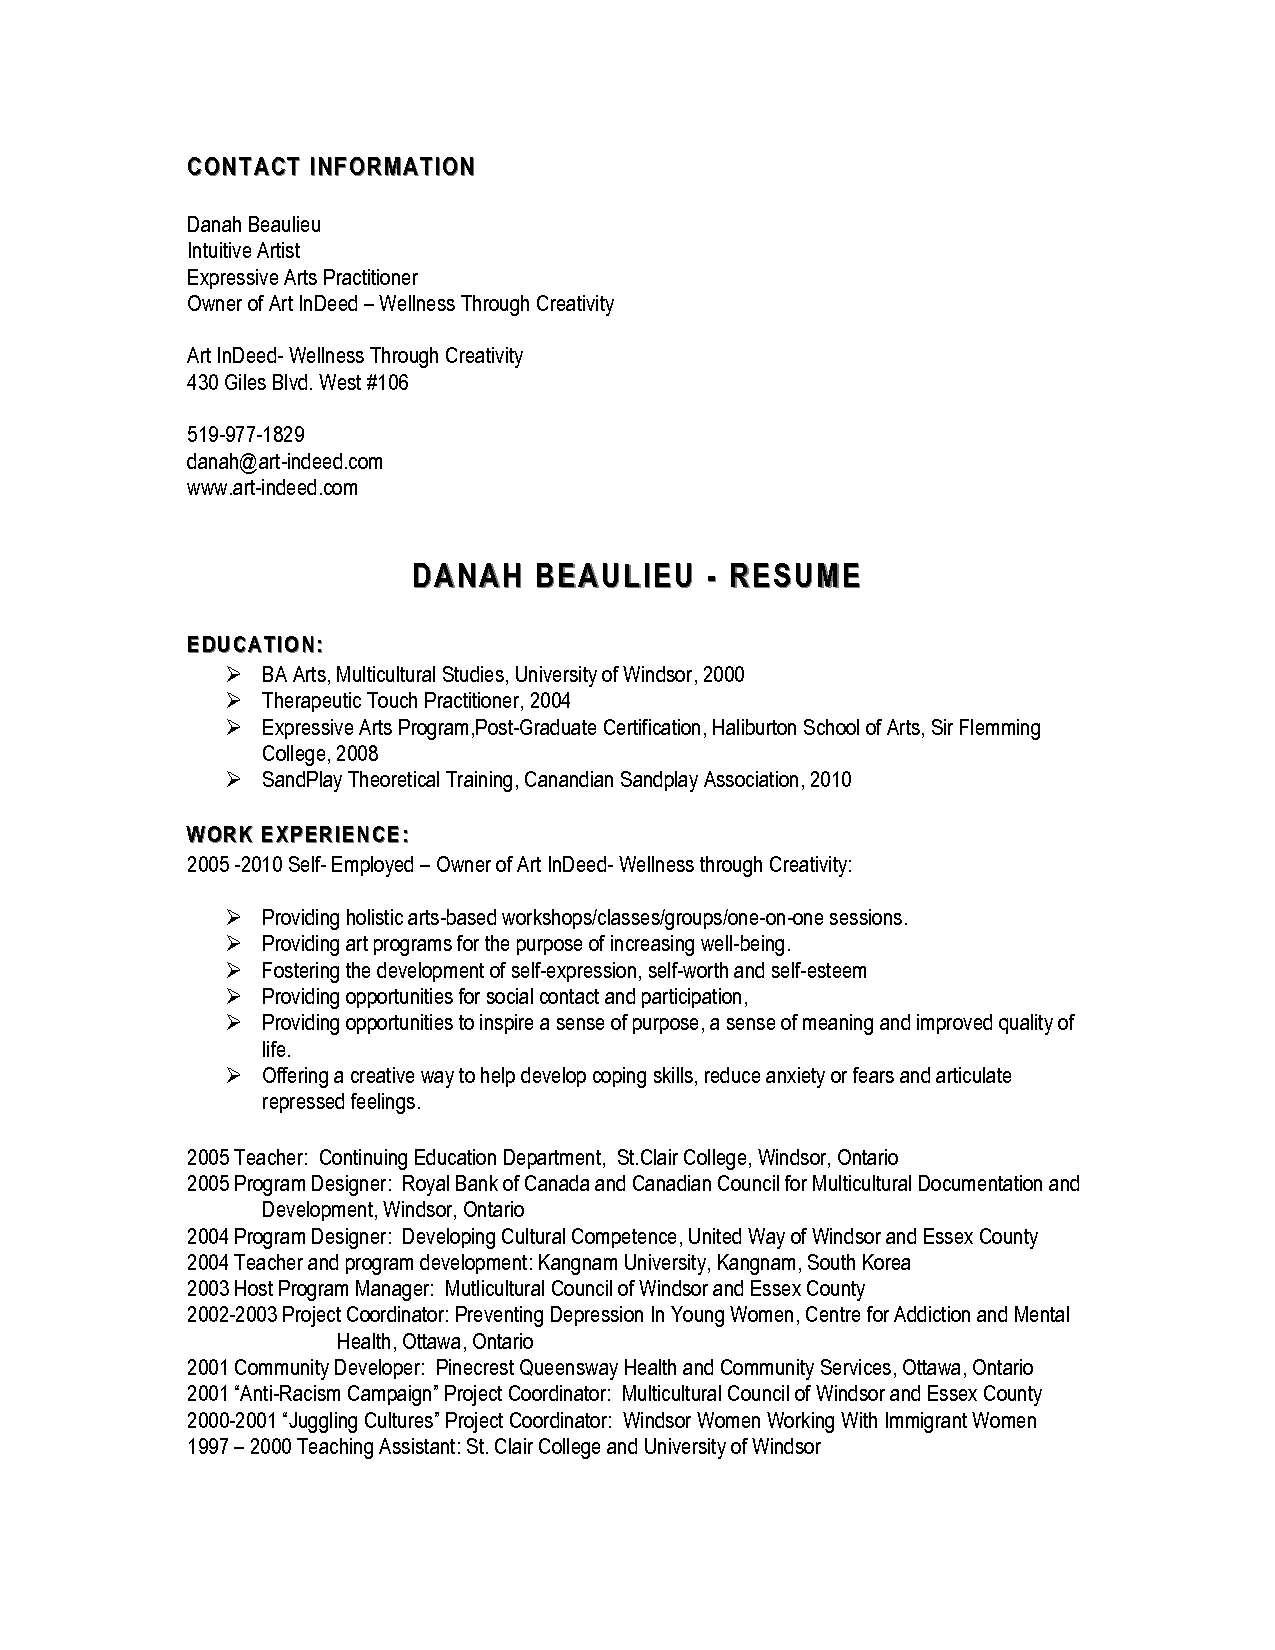 Cv Template Indeed Cv Template Resume Free Resume Resume Templates